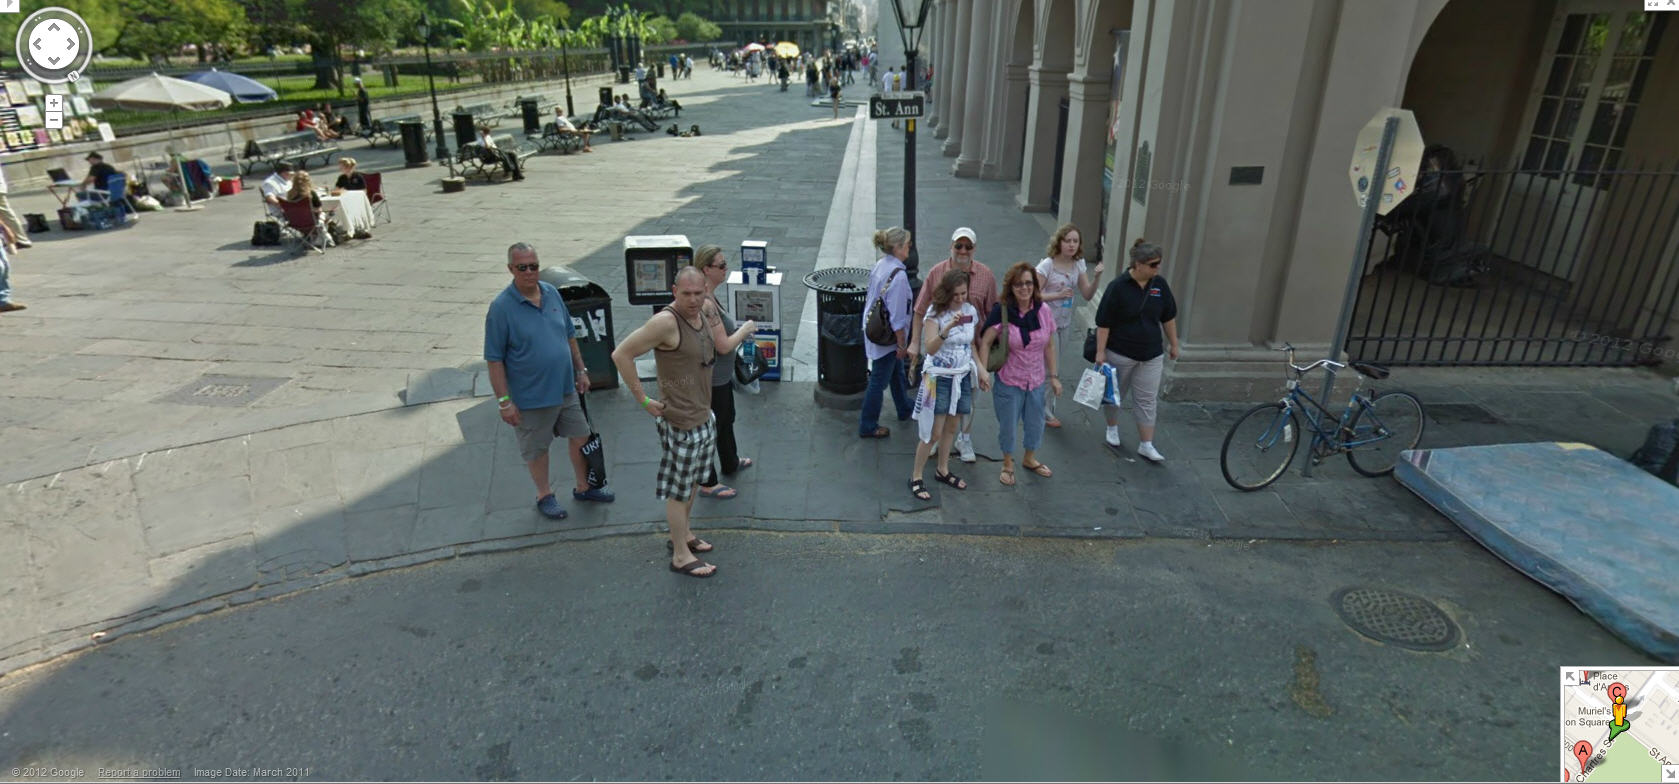 it-appears-google-forgot-to-blur-faces-for-the-new-street-view-imagery-in-new-orleans--